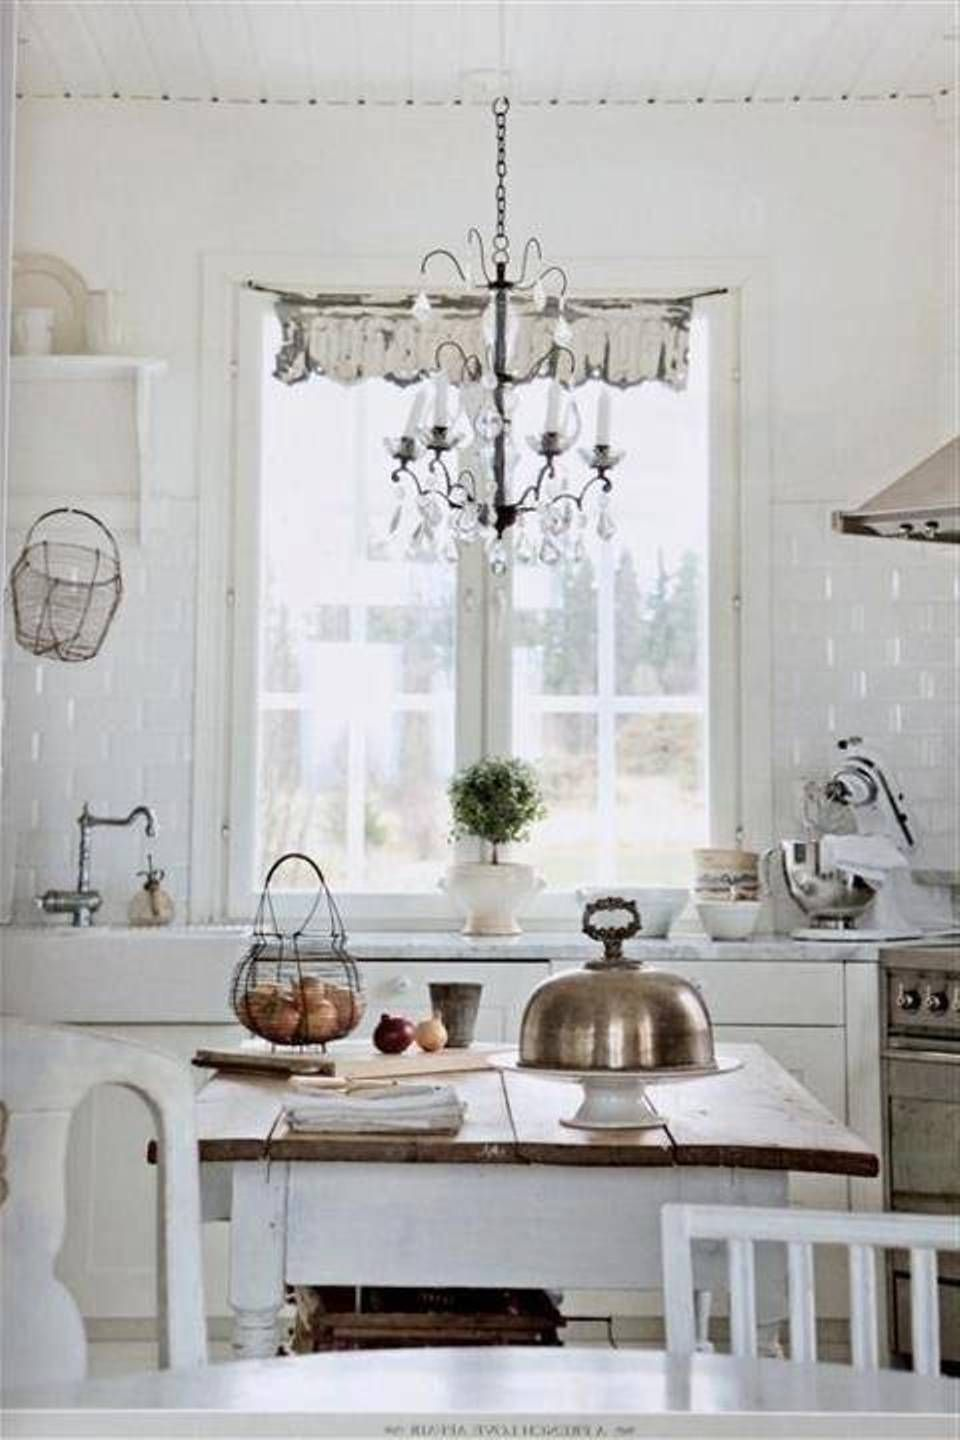 Shabby Chic White Kitchen With Chandelier Lighting